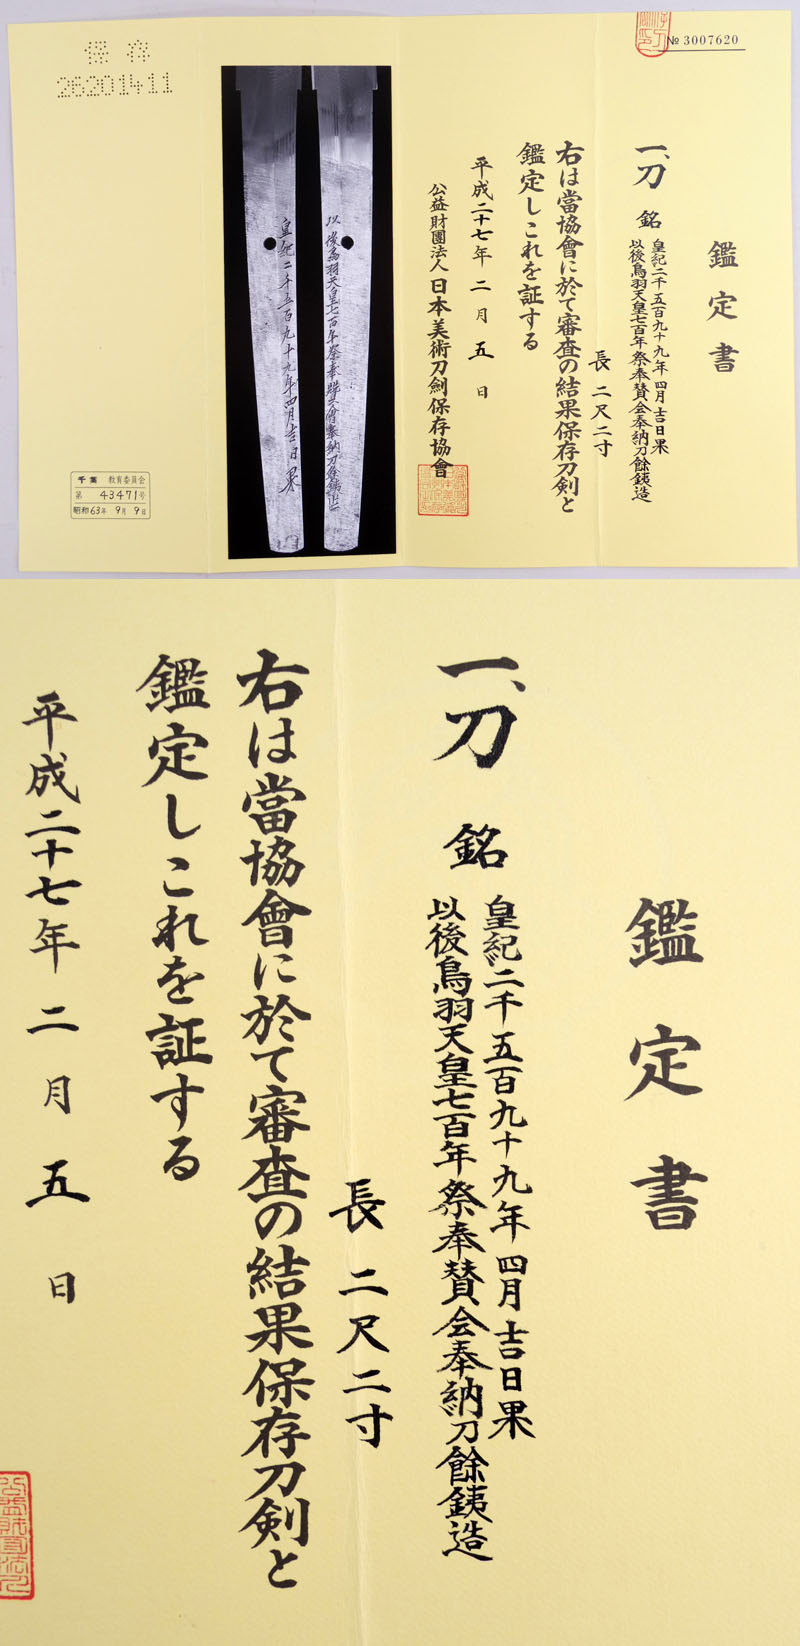 皇紀2千5百 99.4.吉日果 Picture of Certificate